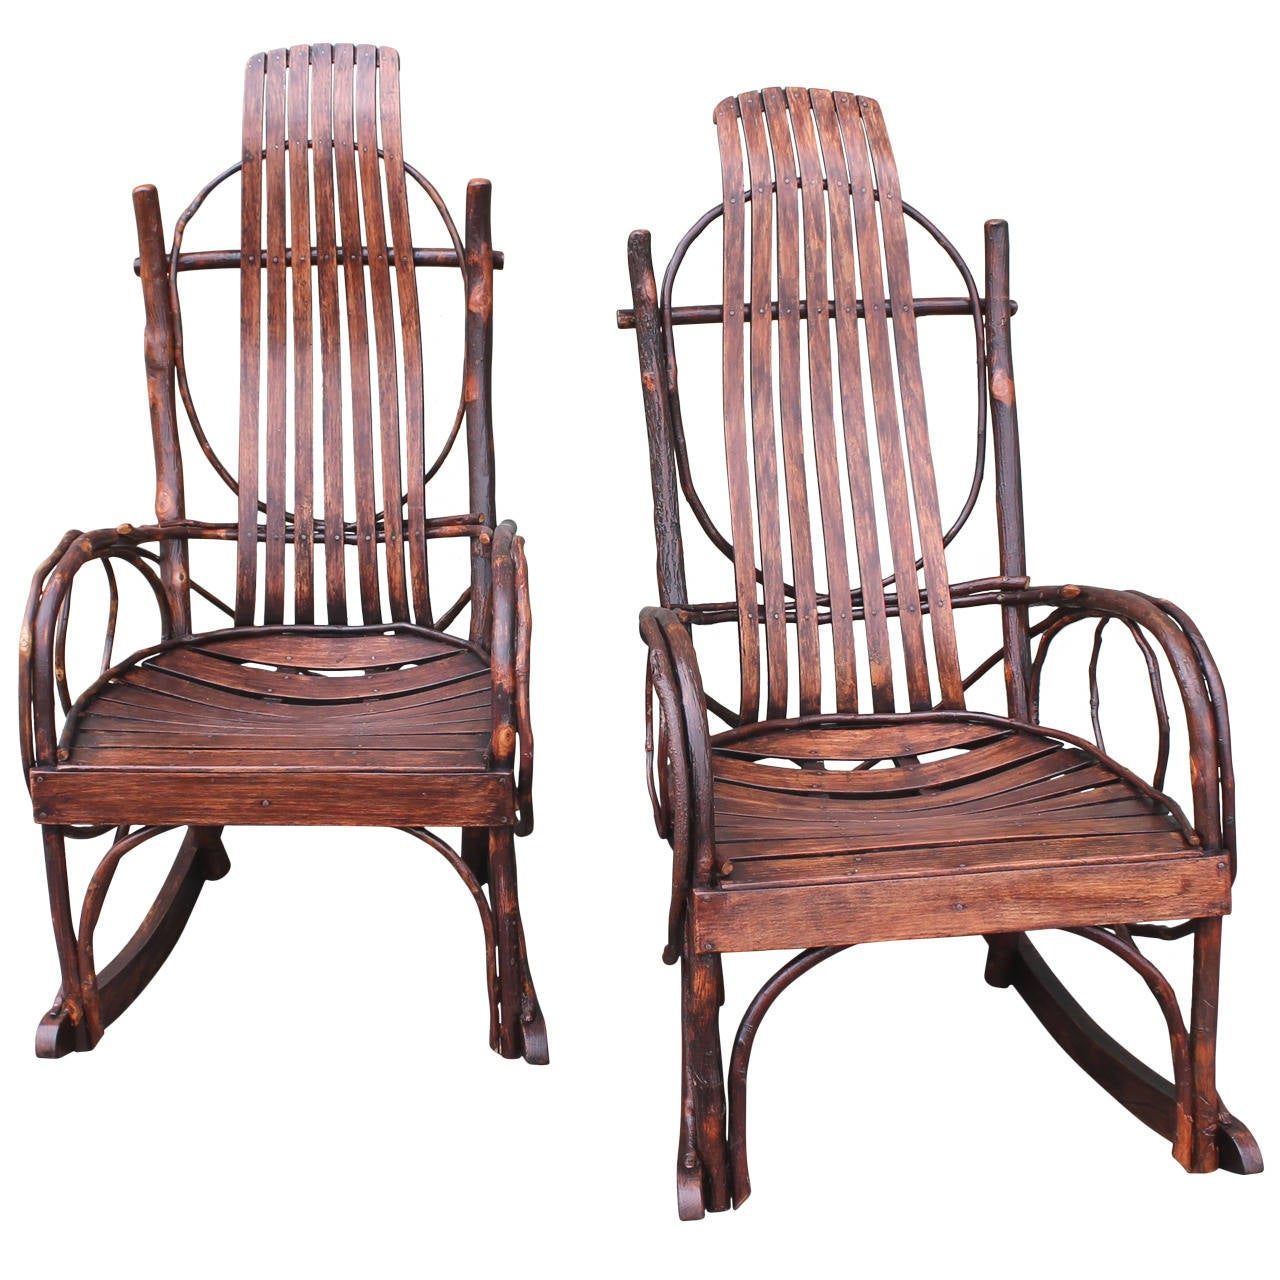 handmade rocking chairs algomatm c frame hanging patio chair stand pair of matching amish bentwood at 1stdibs